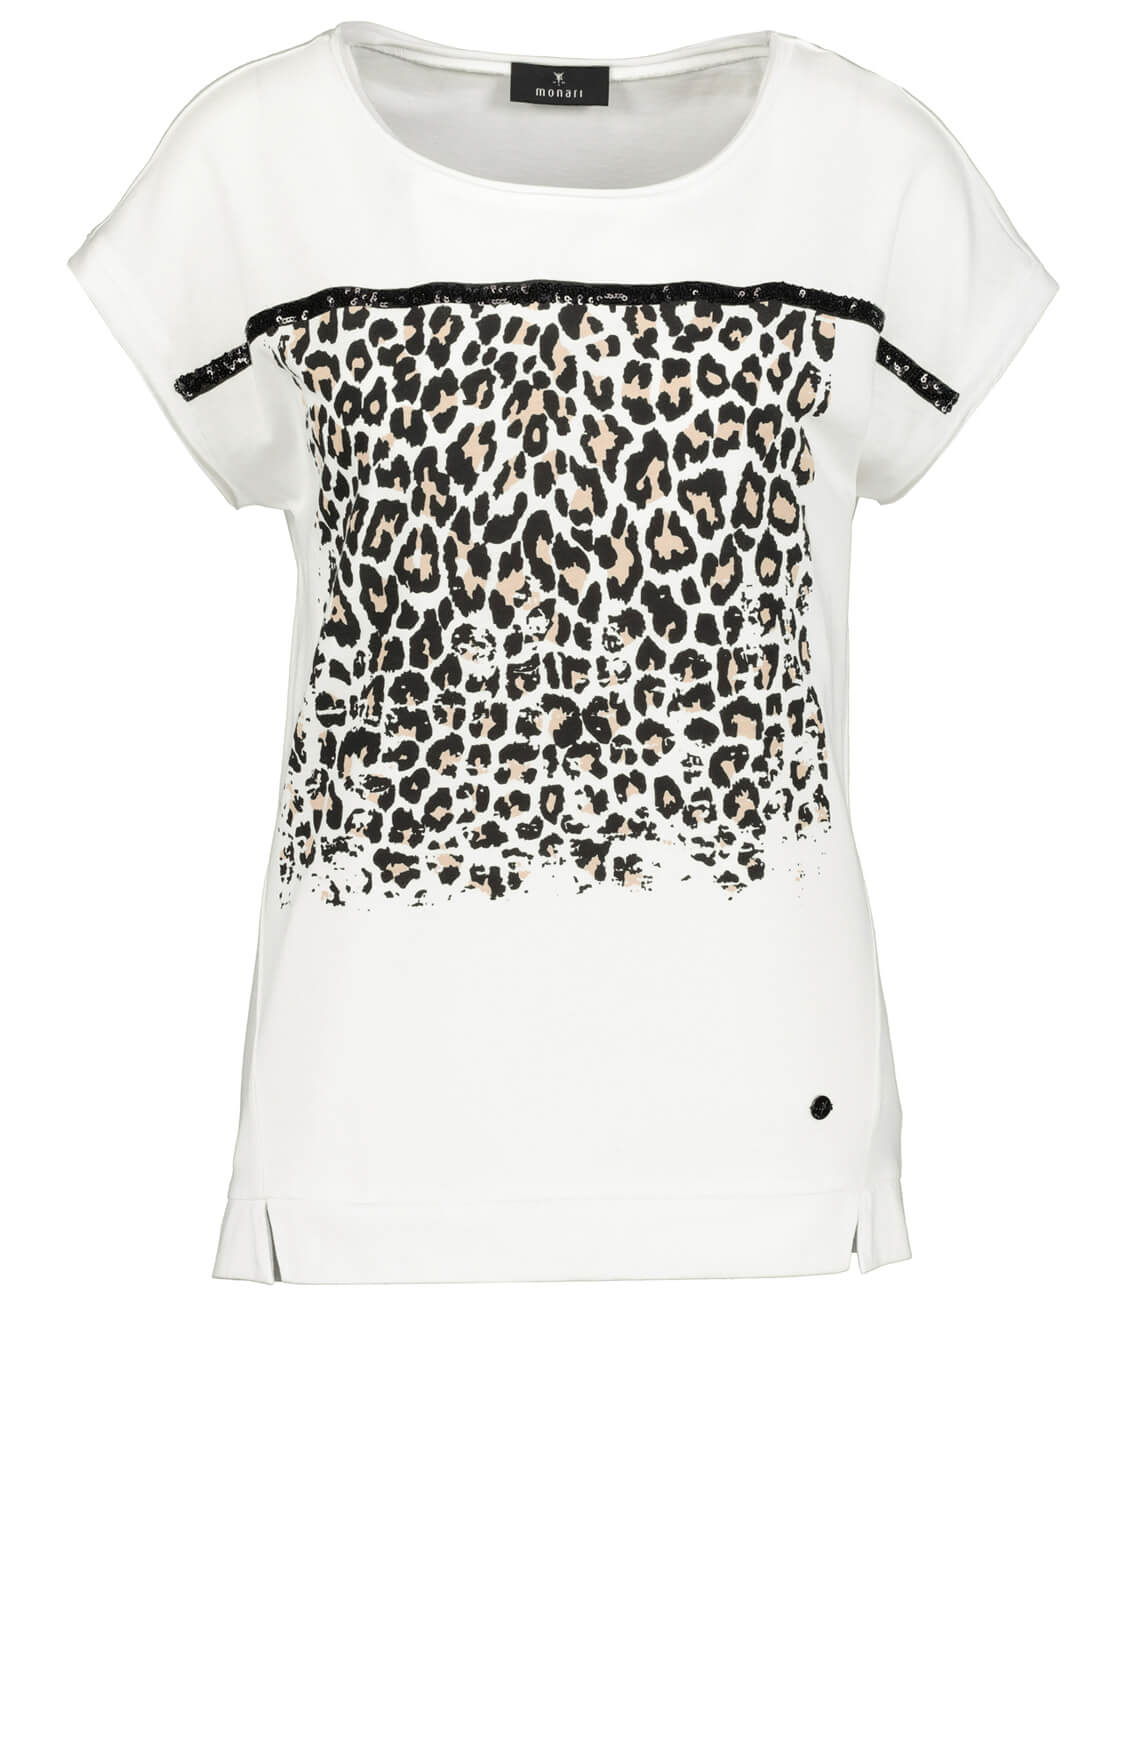 Monari Dames Shirt met pailletten wit